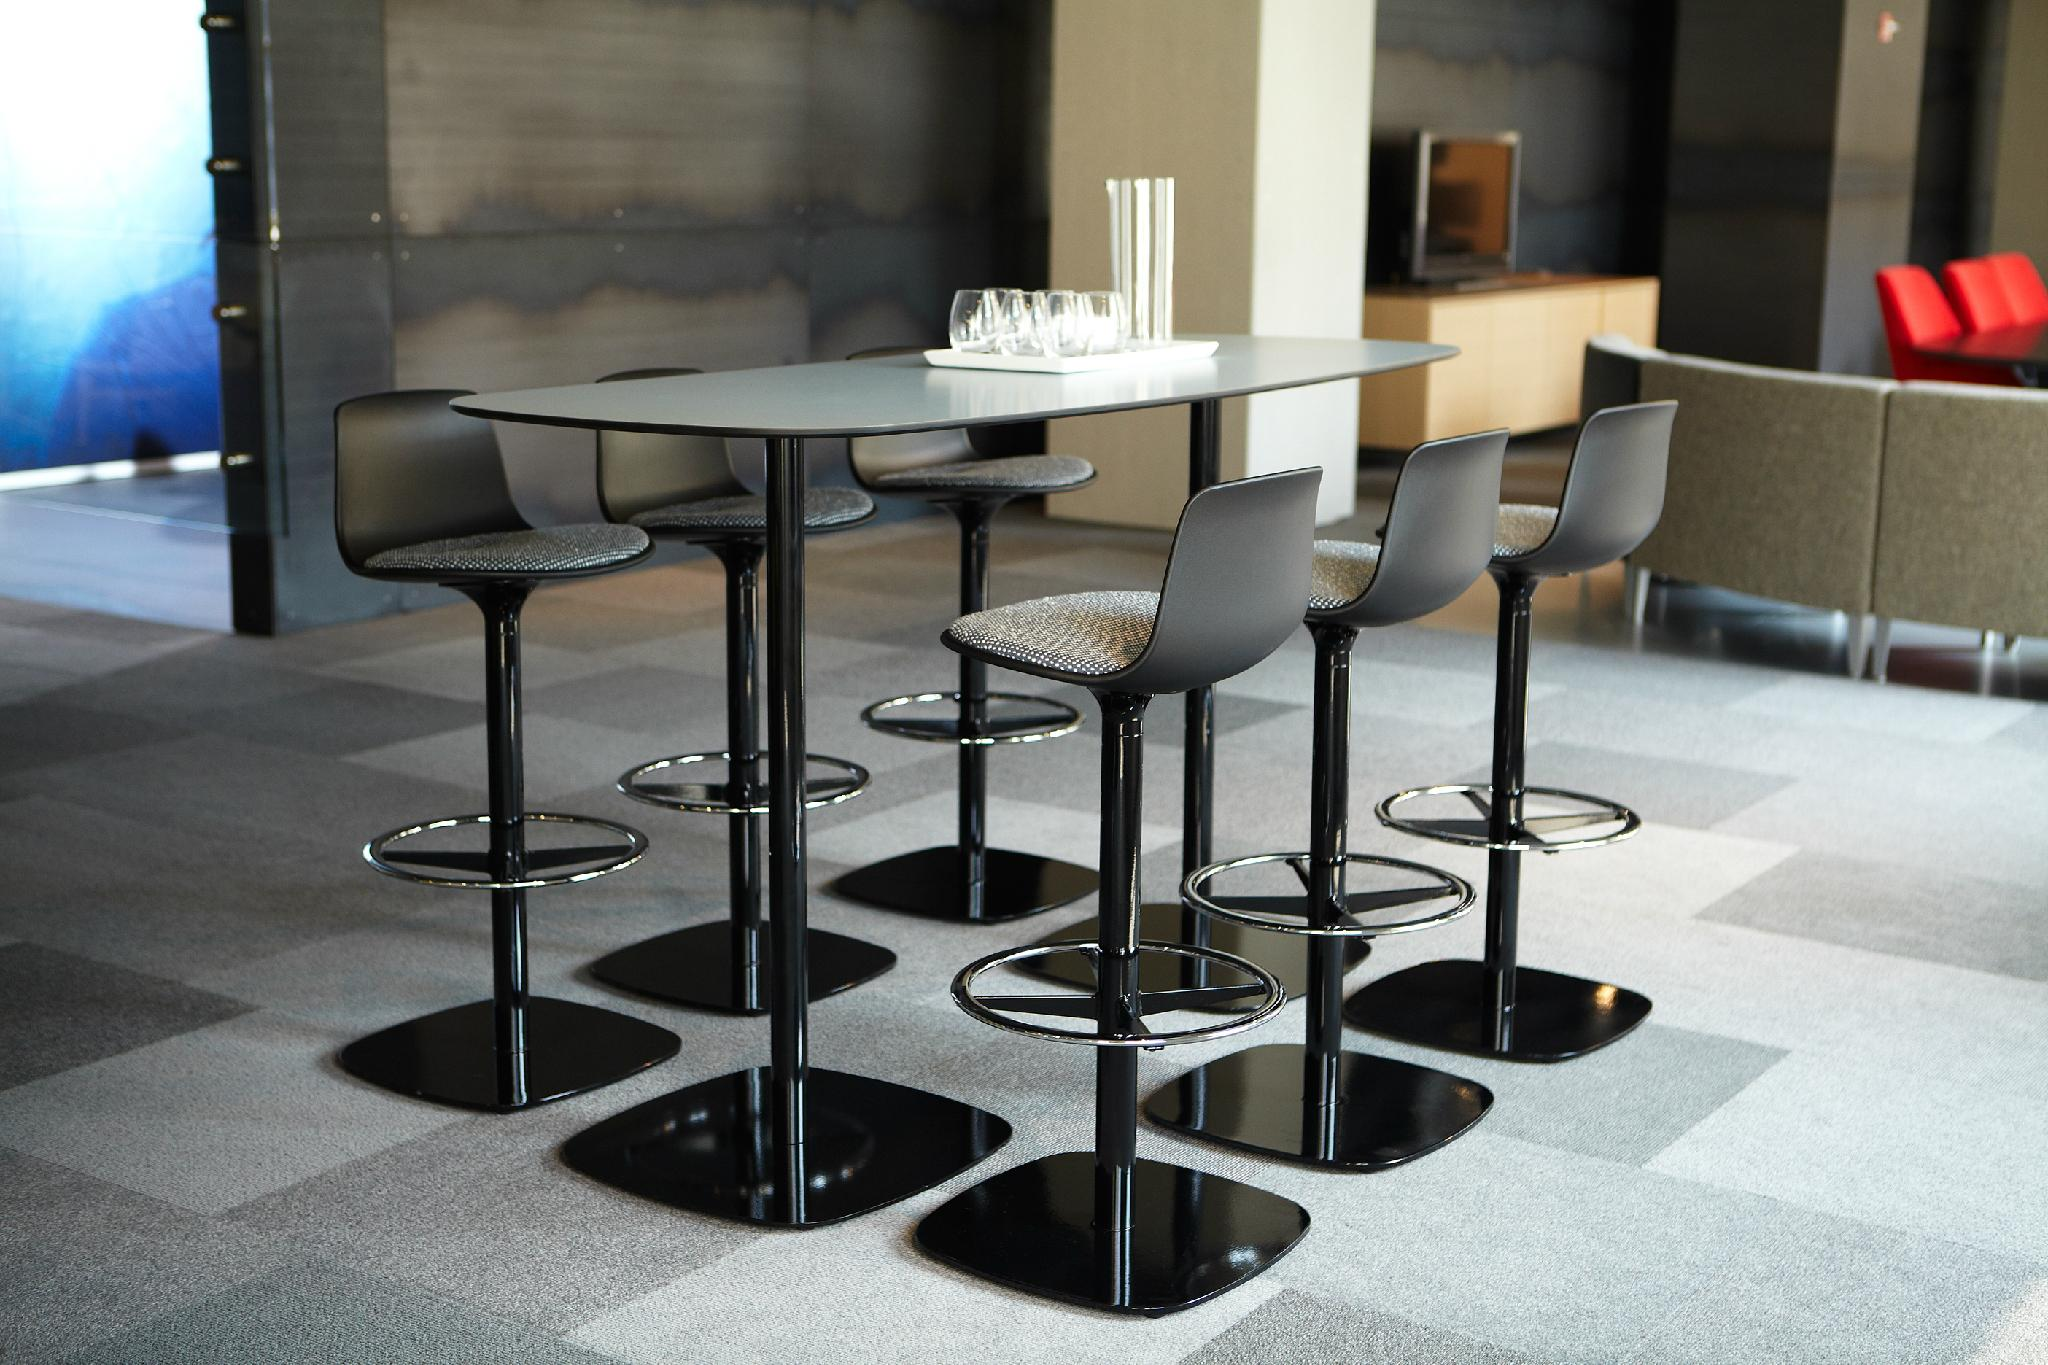 Uispair Modern 100% Steel Round Coffee Table Office Table for Home Office Decora 5